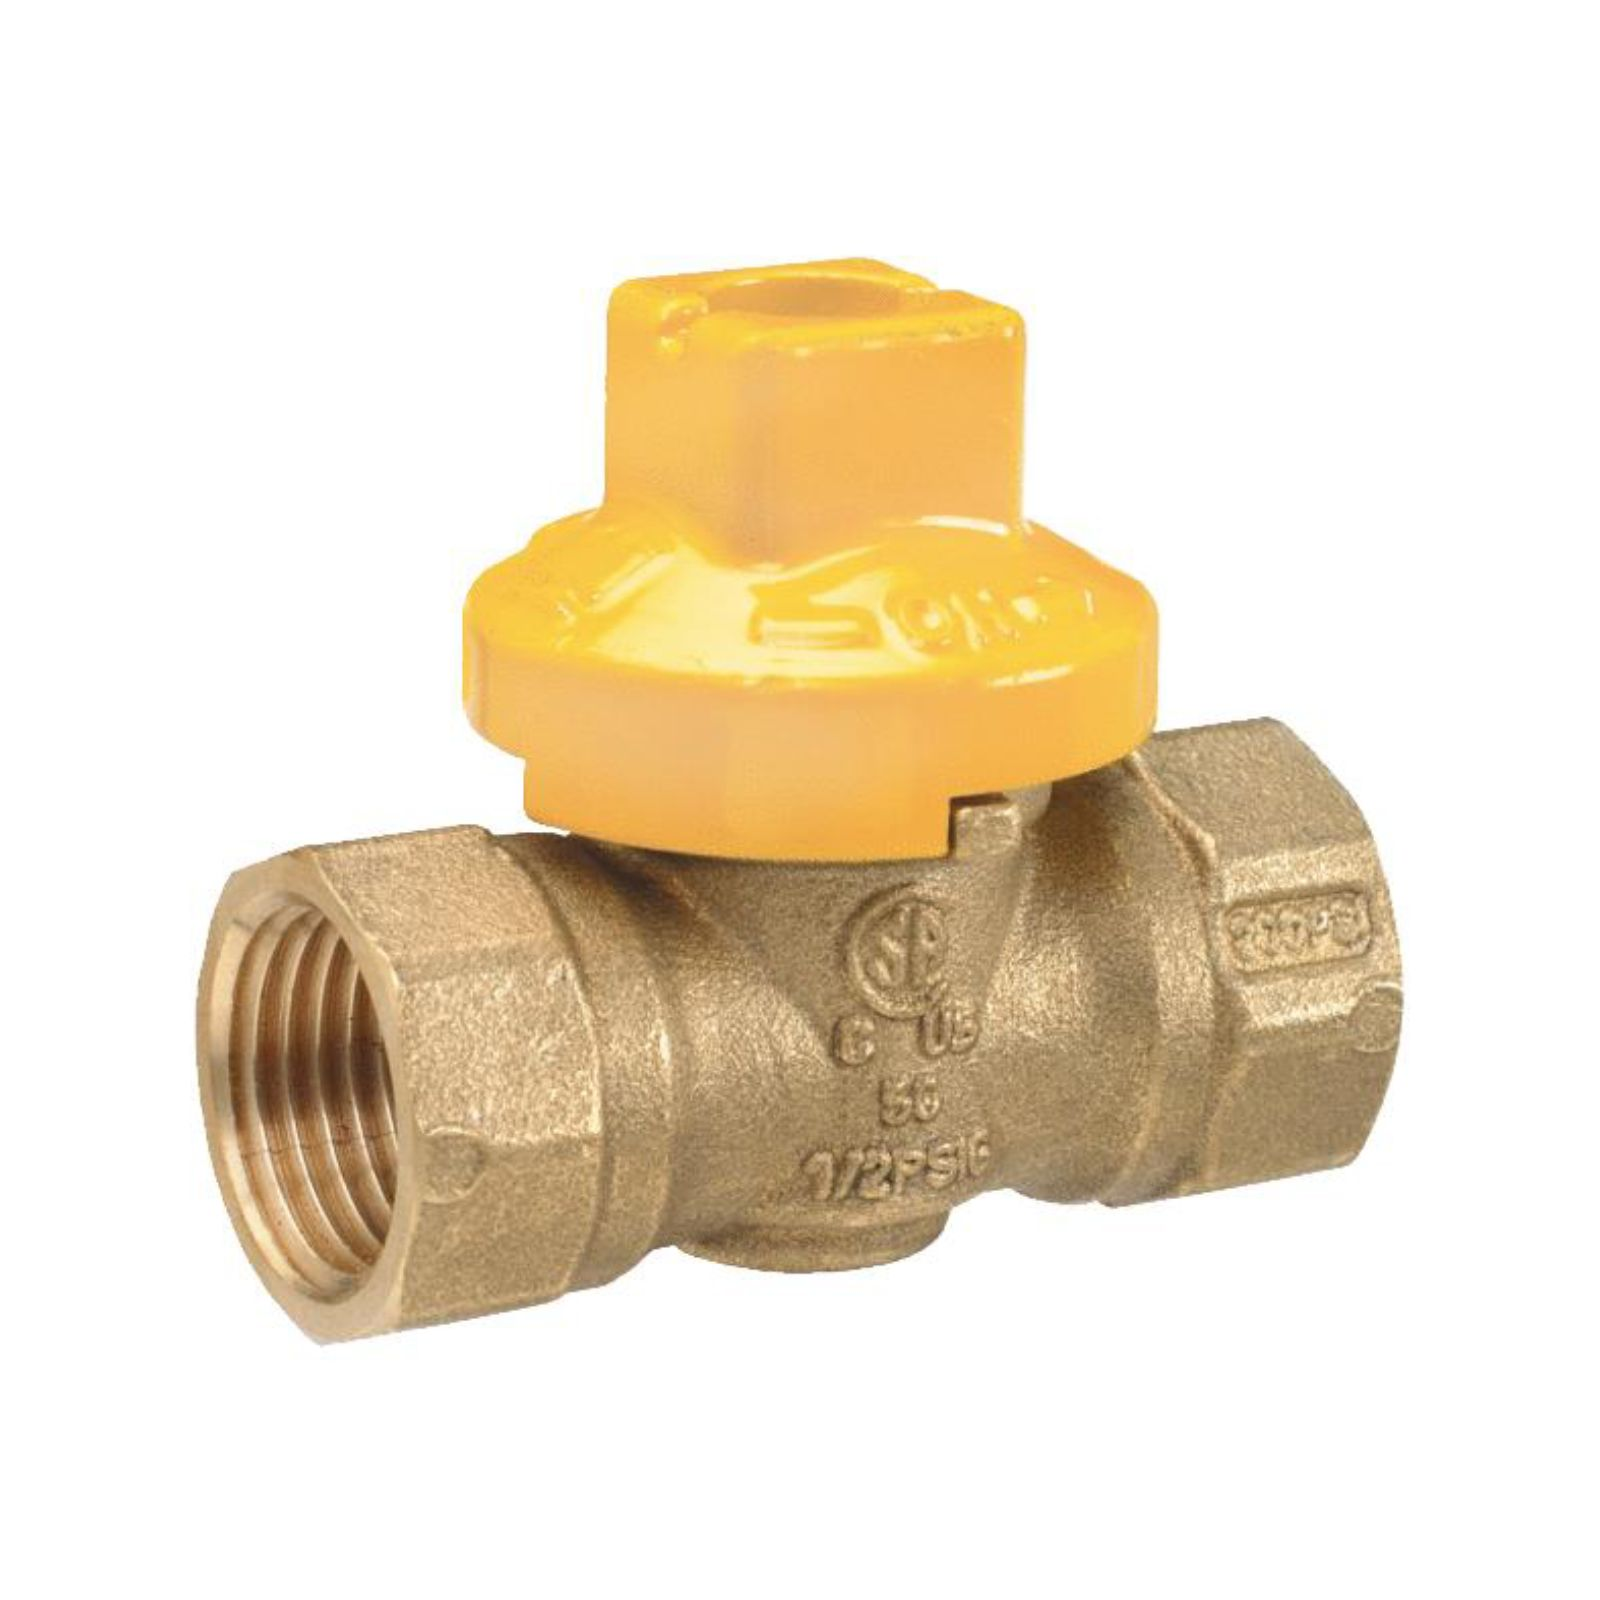 "ProLine Series 114-523 - Gas Cock Ball Valve, 1/2"" X 1/2"" Flare, 1 Piece Design"